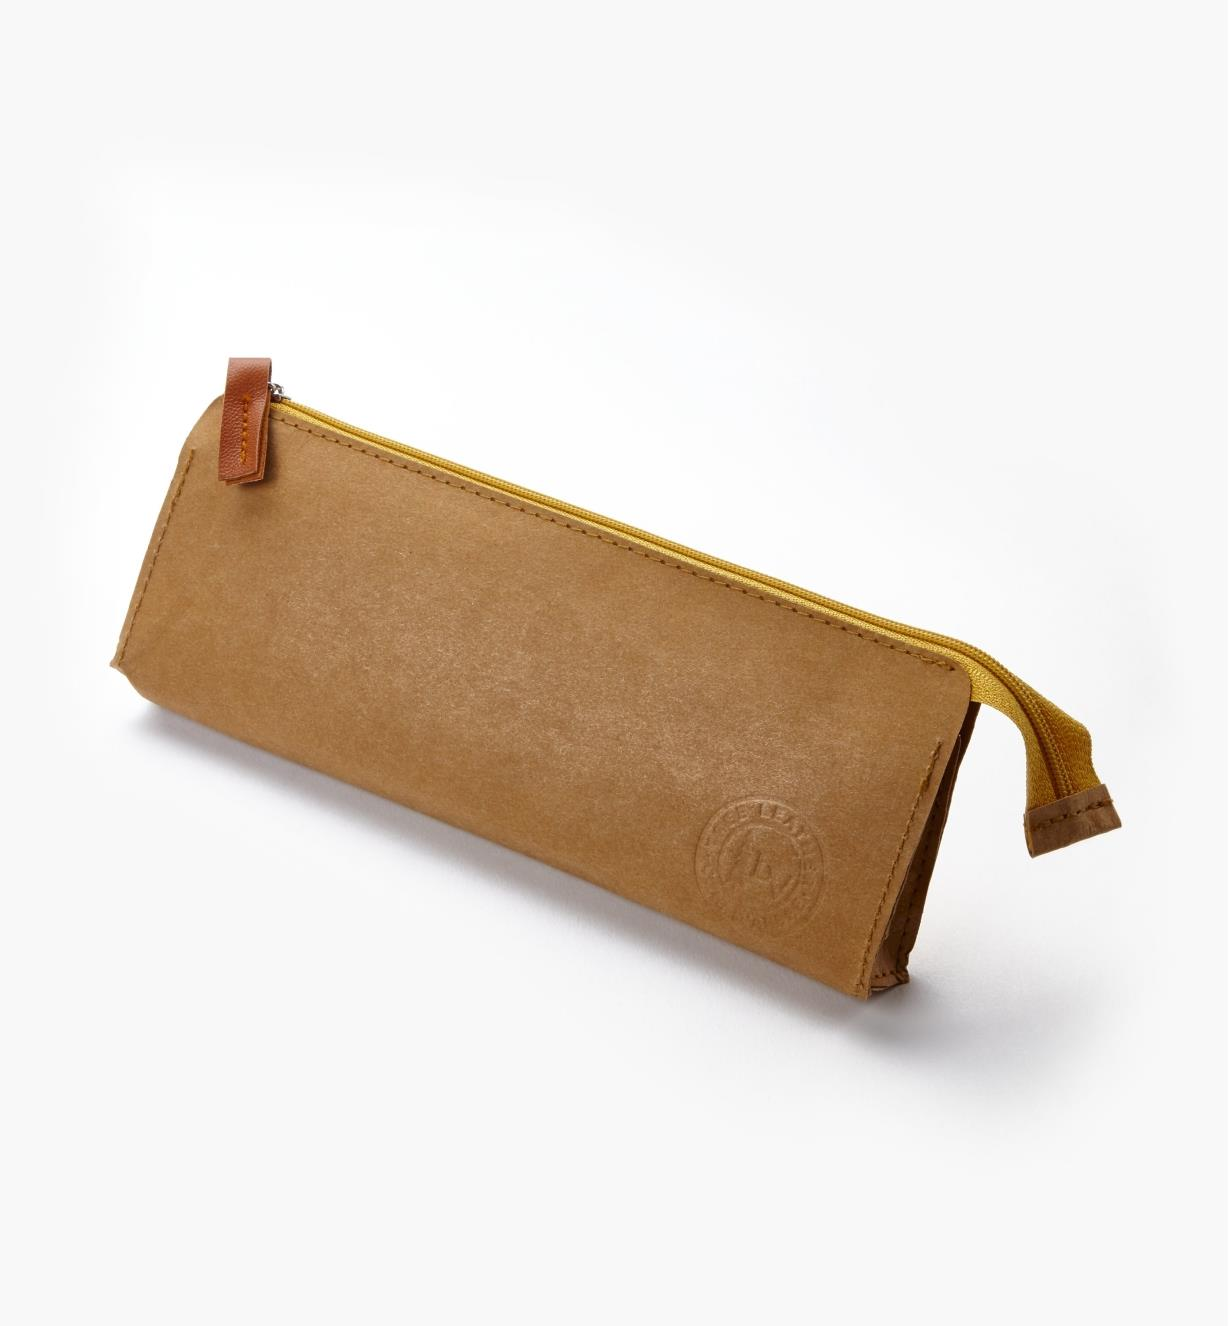 09A0939 - Tree Leather Zippered Pouch